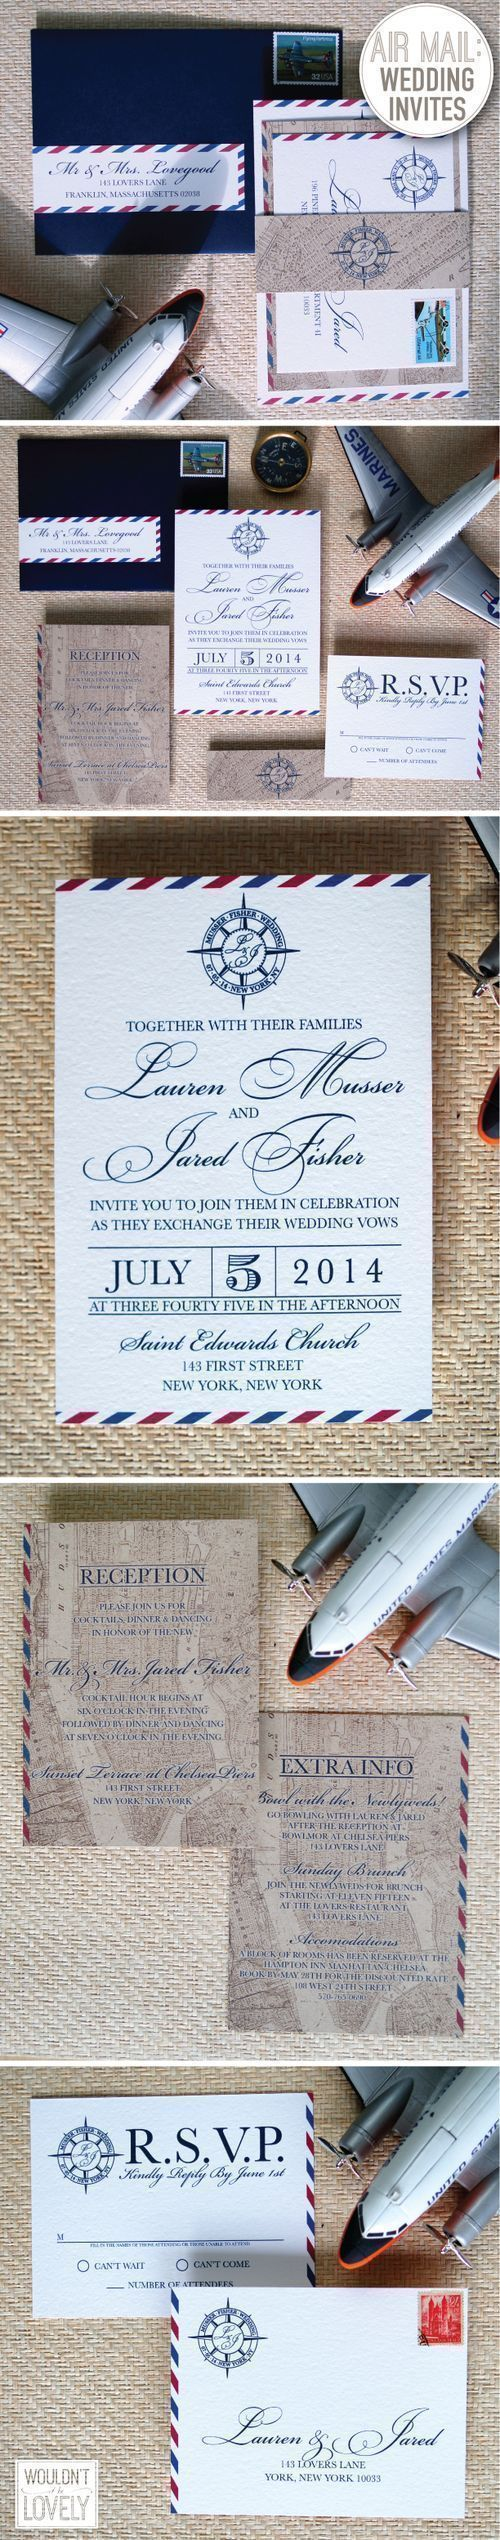 39 Best Invitations Gala Images On Pinterest Invitations Weddings